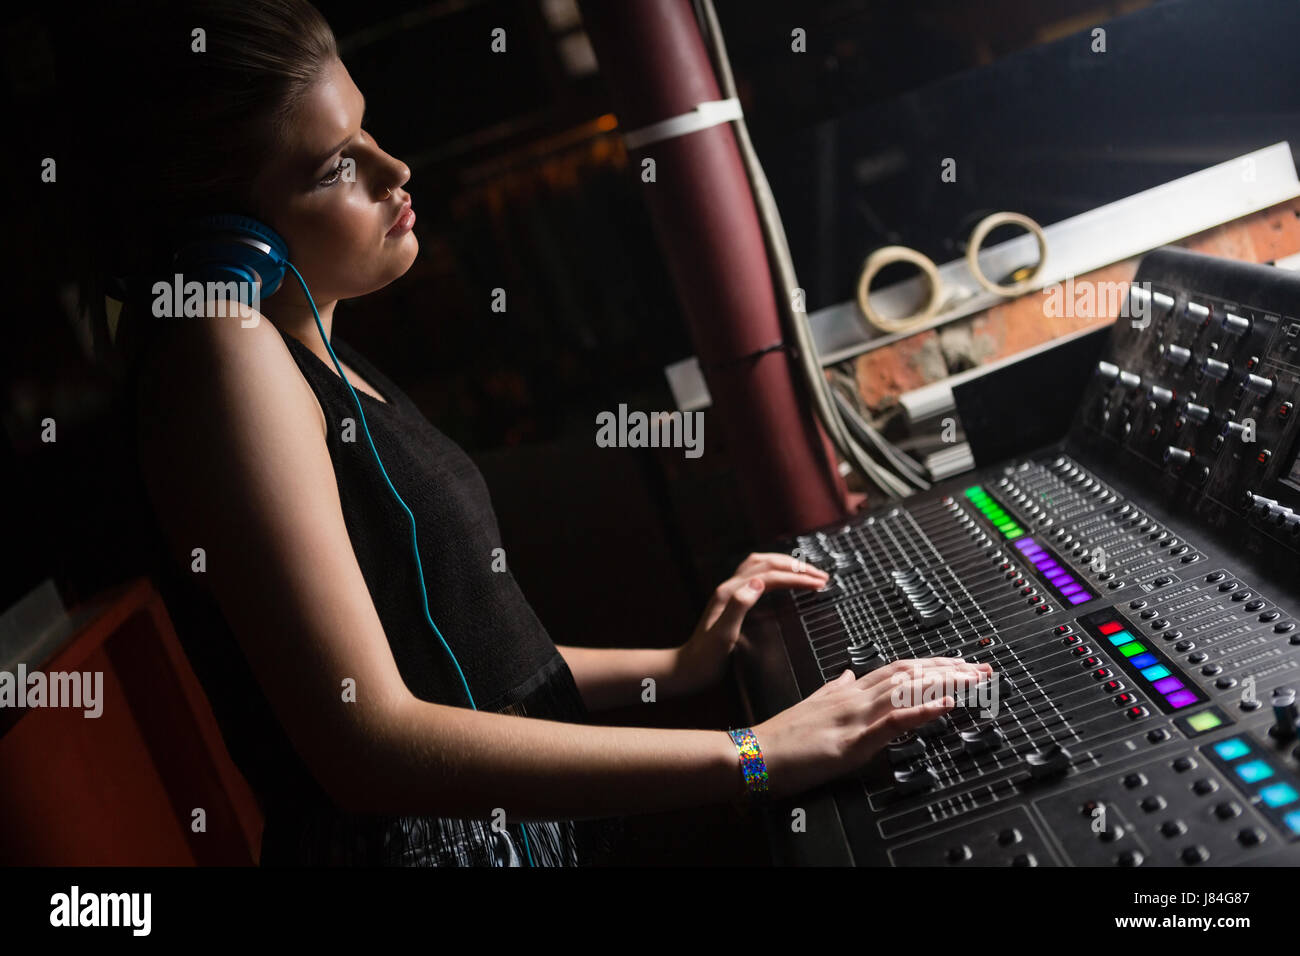 Female audio engineer using sound mixer in recording studio Stock Photo